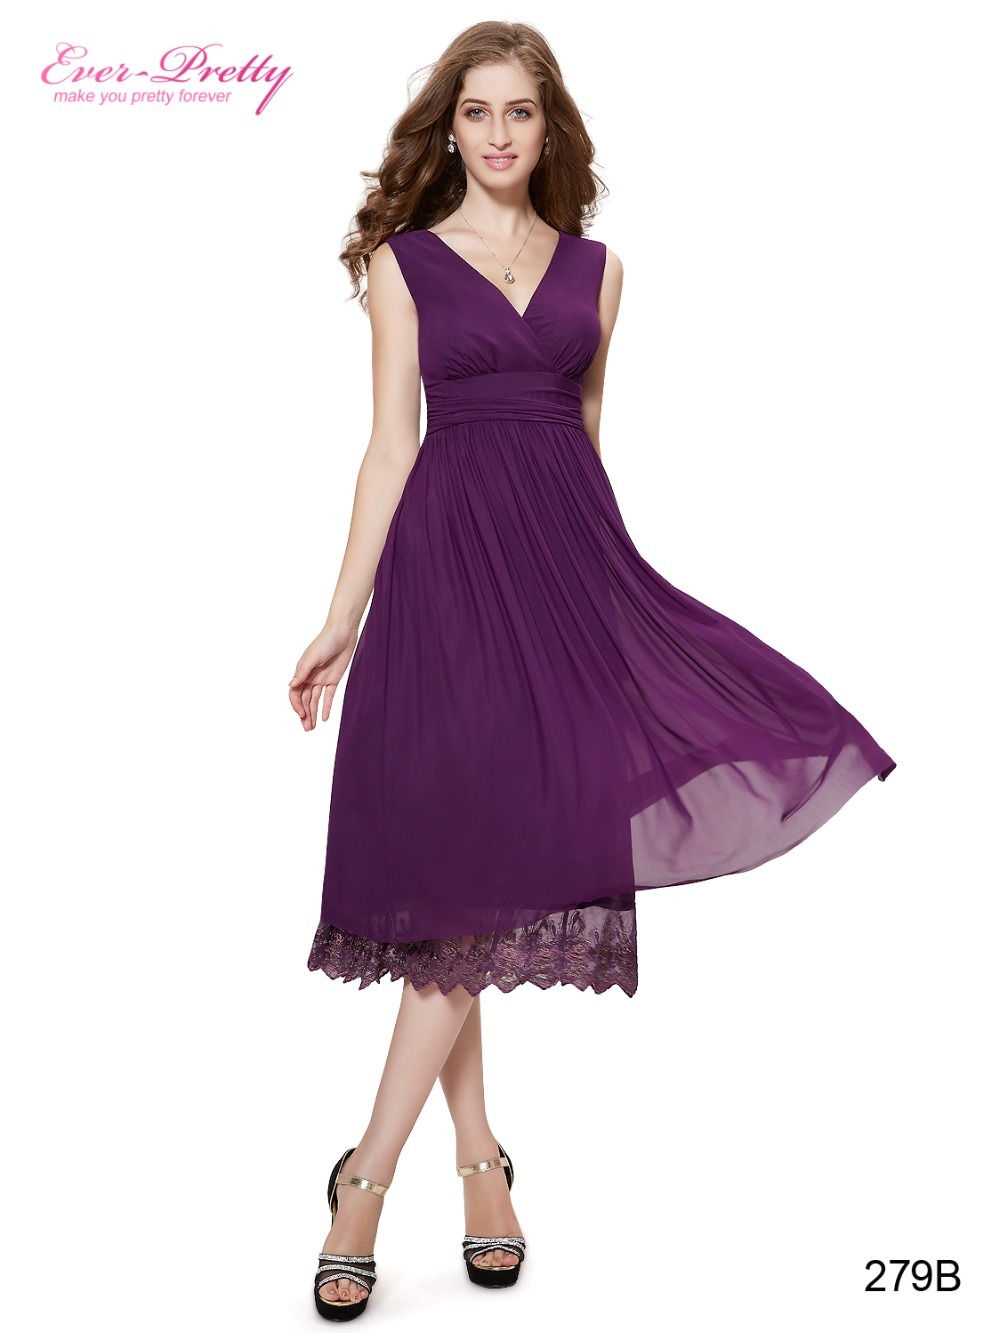 Summer Dresses For Women Mesh Casual Dresses He0279 Ever Pretty Sexy Purple Ruched -2462